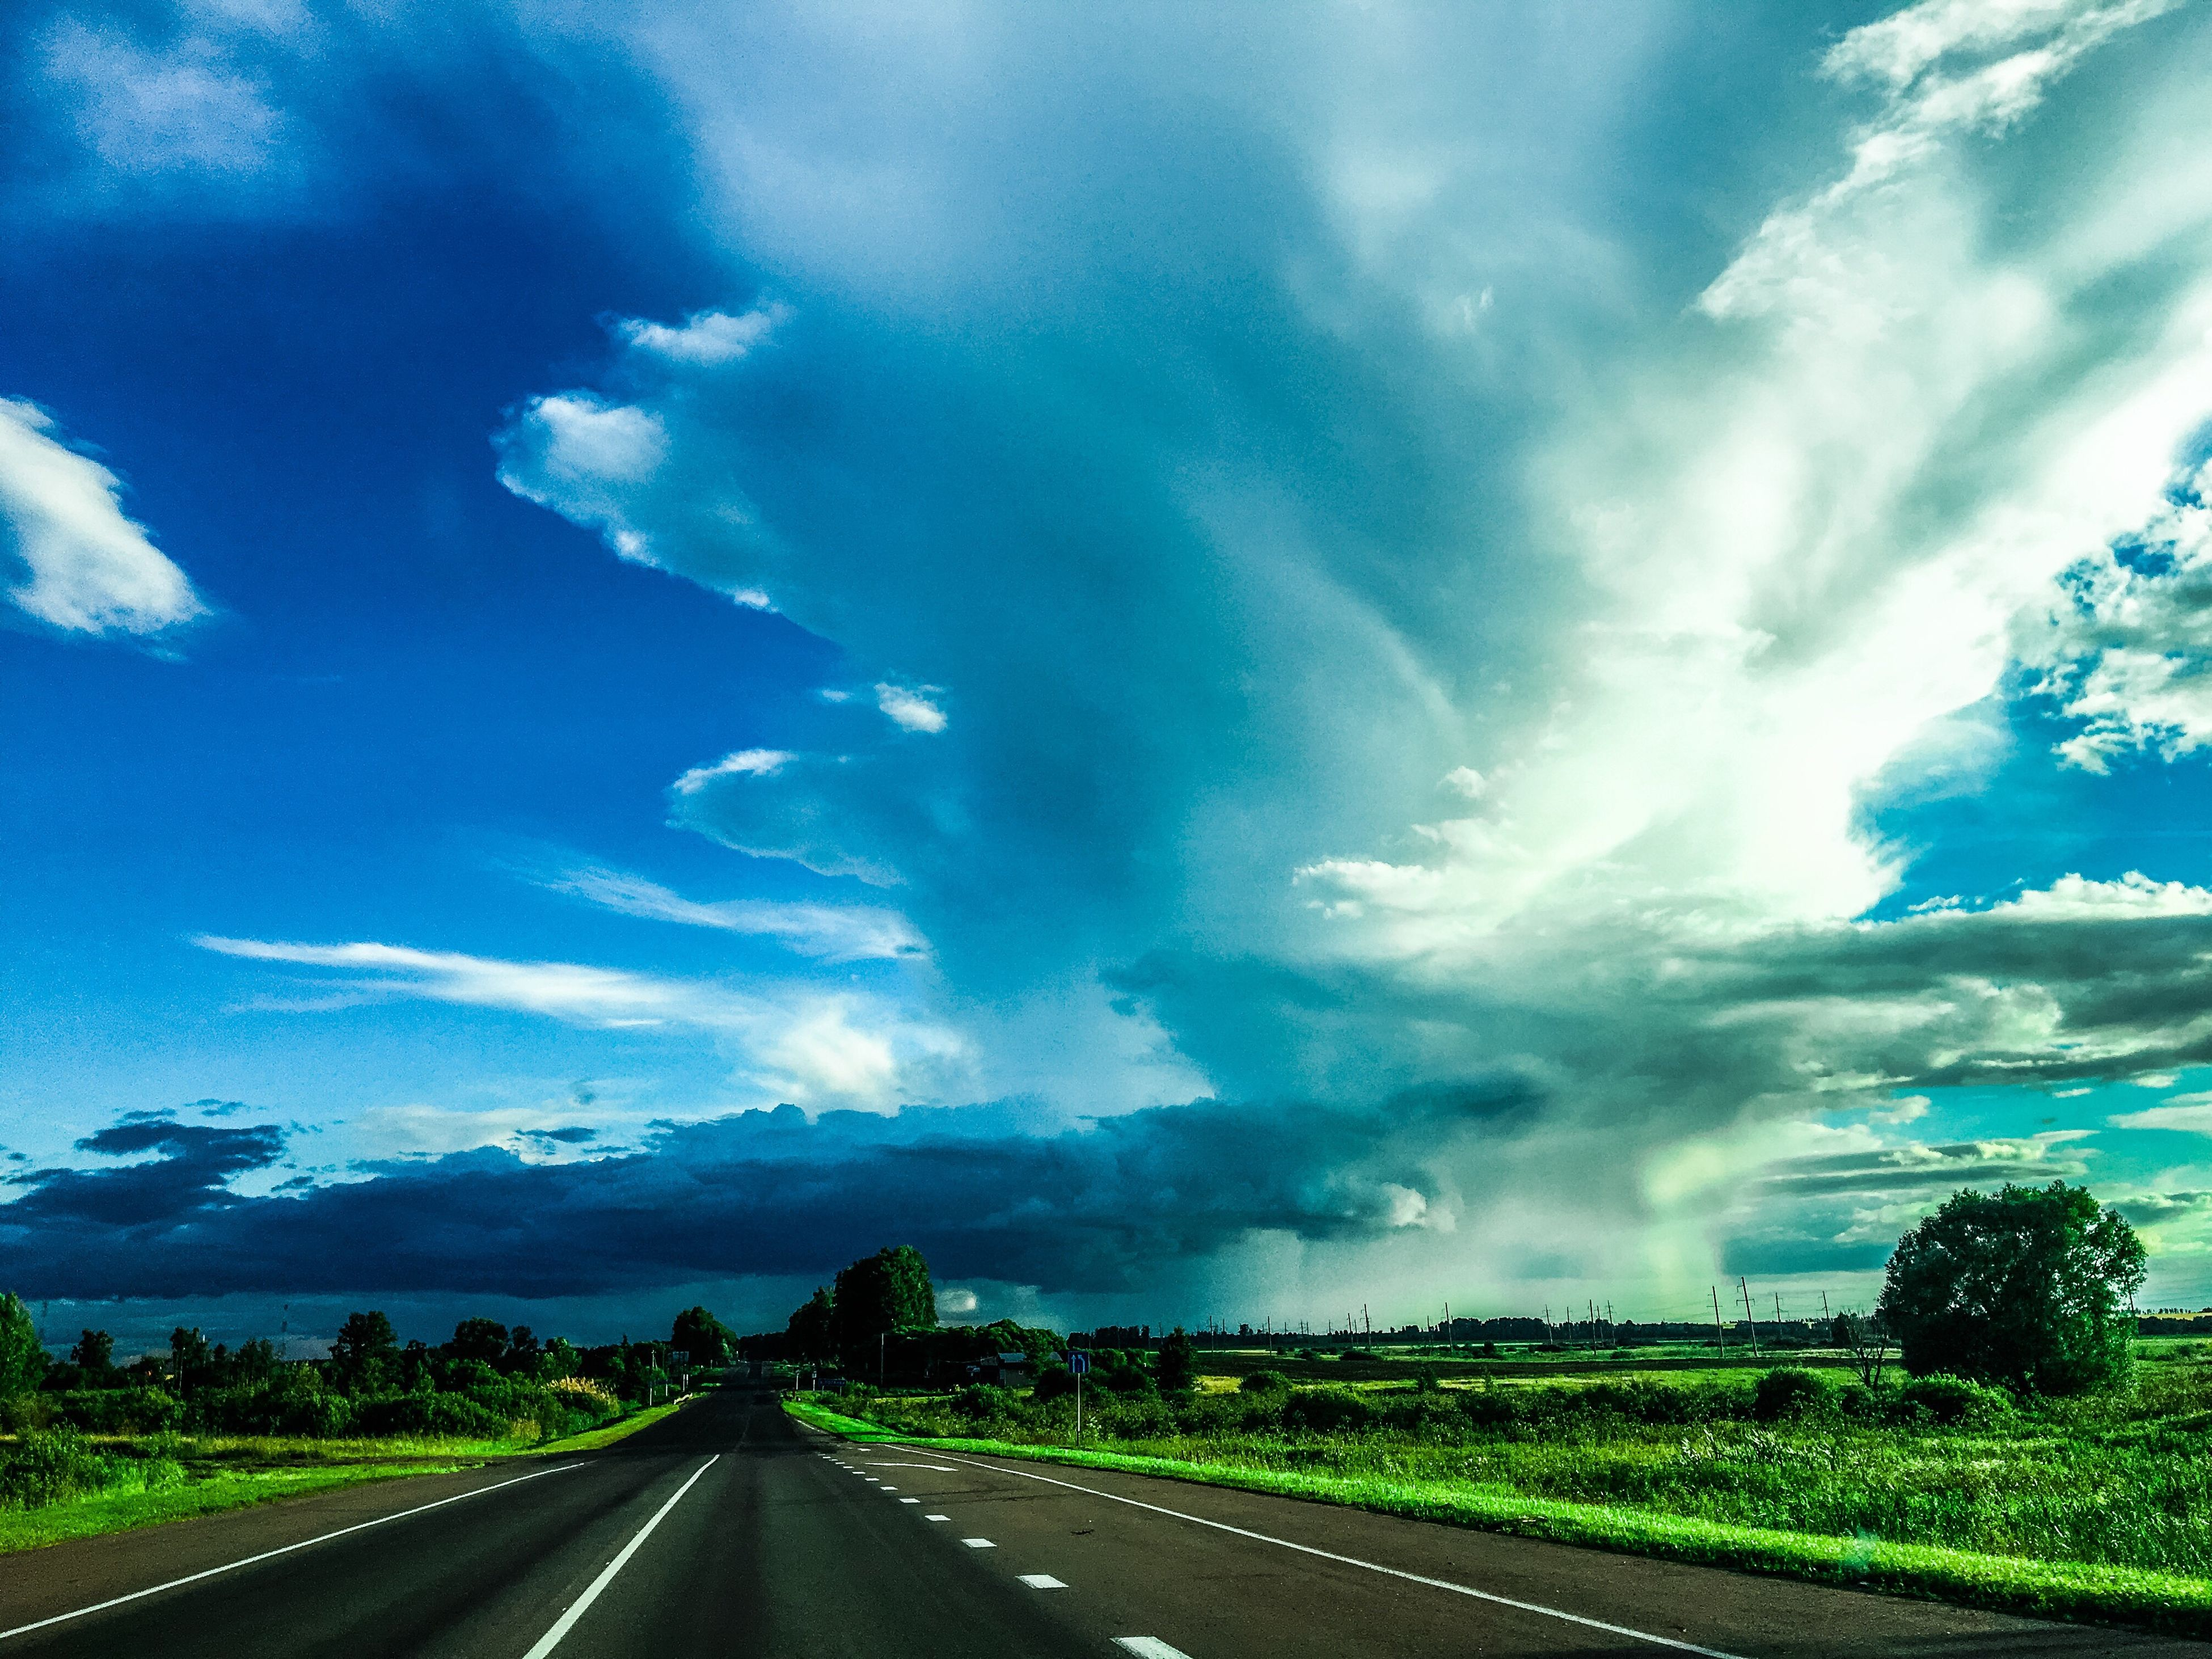 road, sky, the way forward, cloud - sky, transportation, day, nature, landscape, blue, scenics, outdoors, no people, tranquil scene, tranquility, beauty in nature, tree